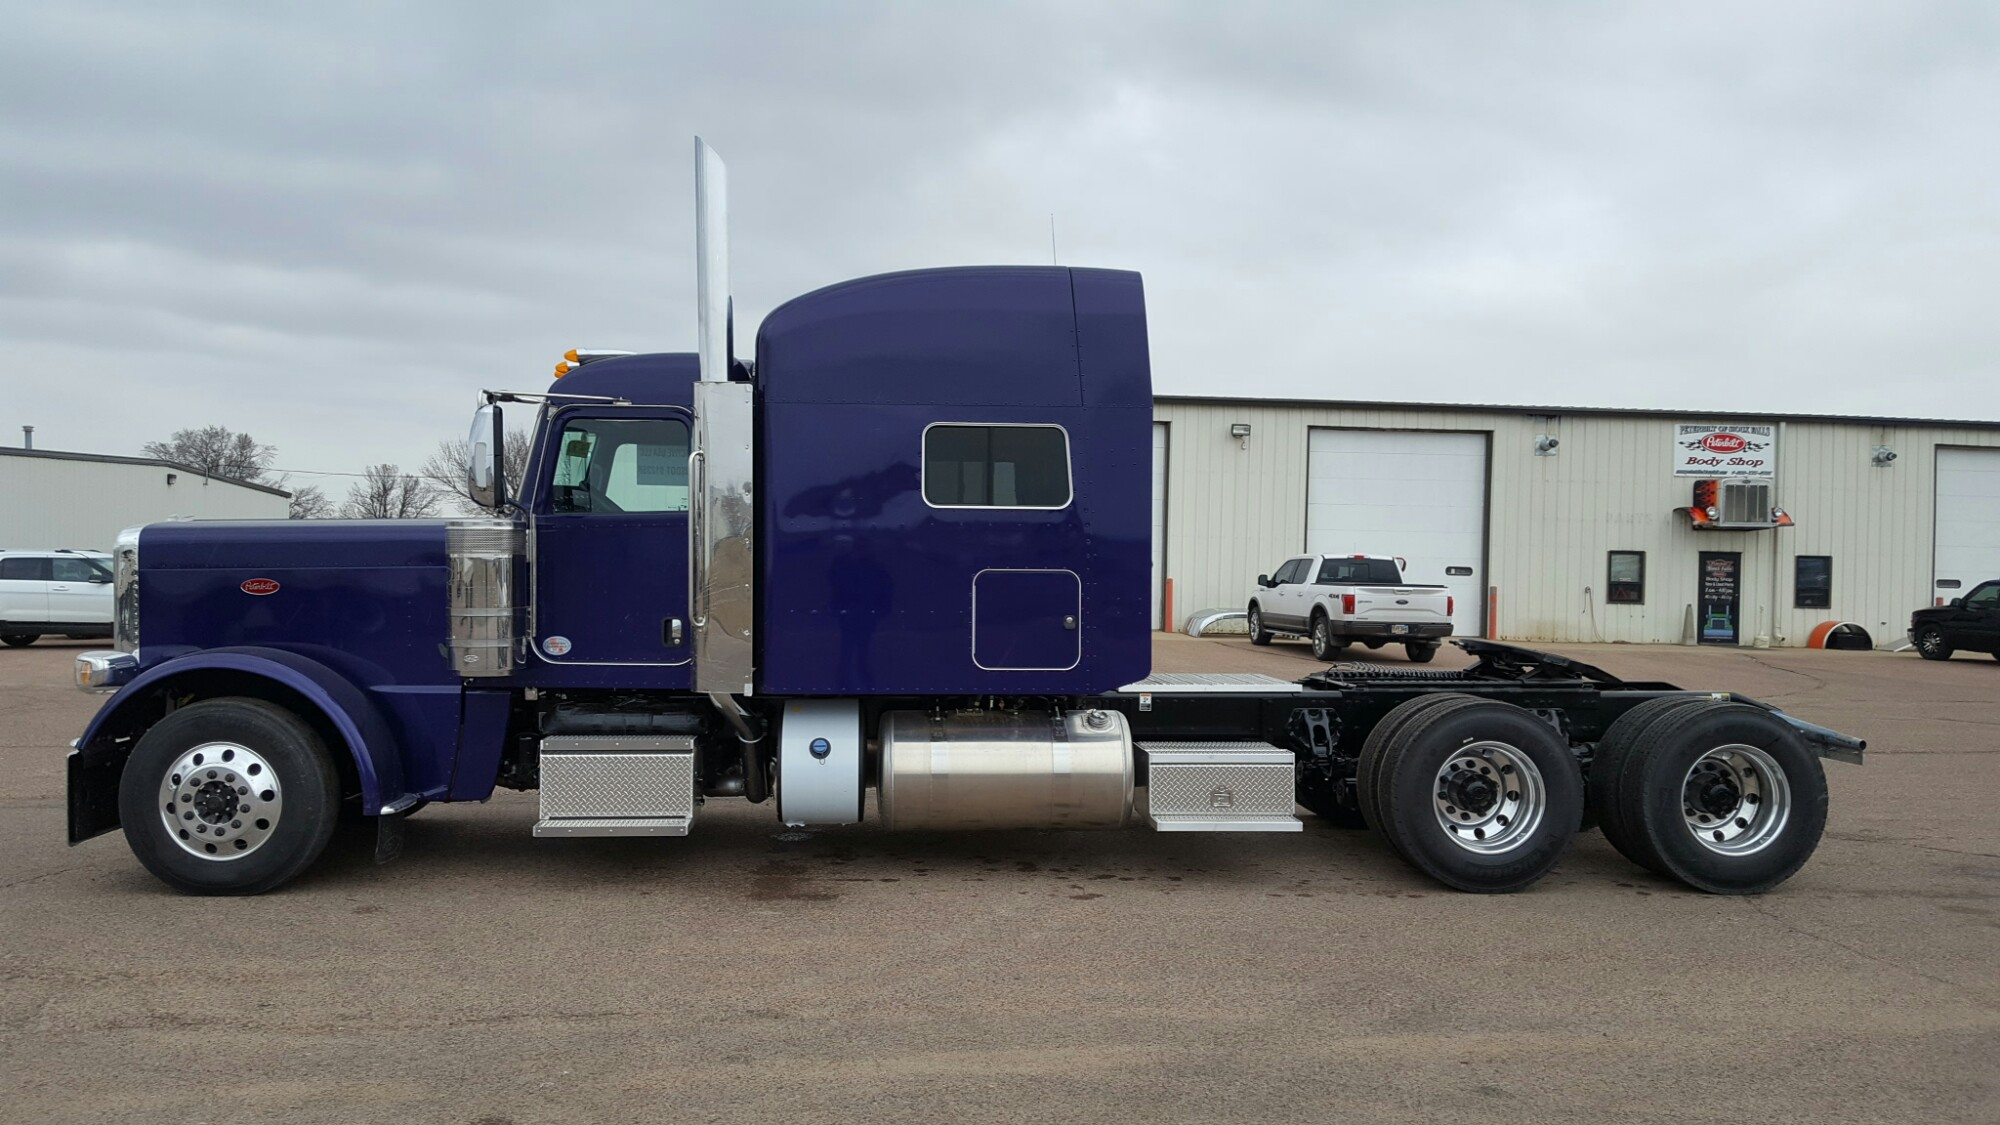 2018 Peterbilt Pictures To Pin On Pinterest Pinsdaddy